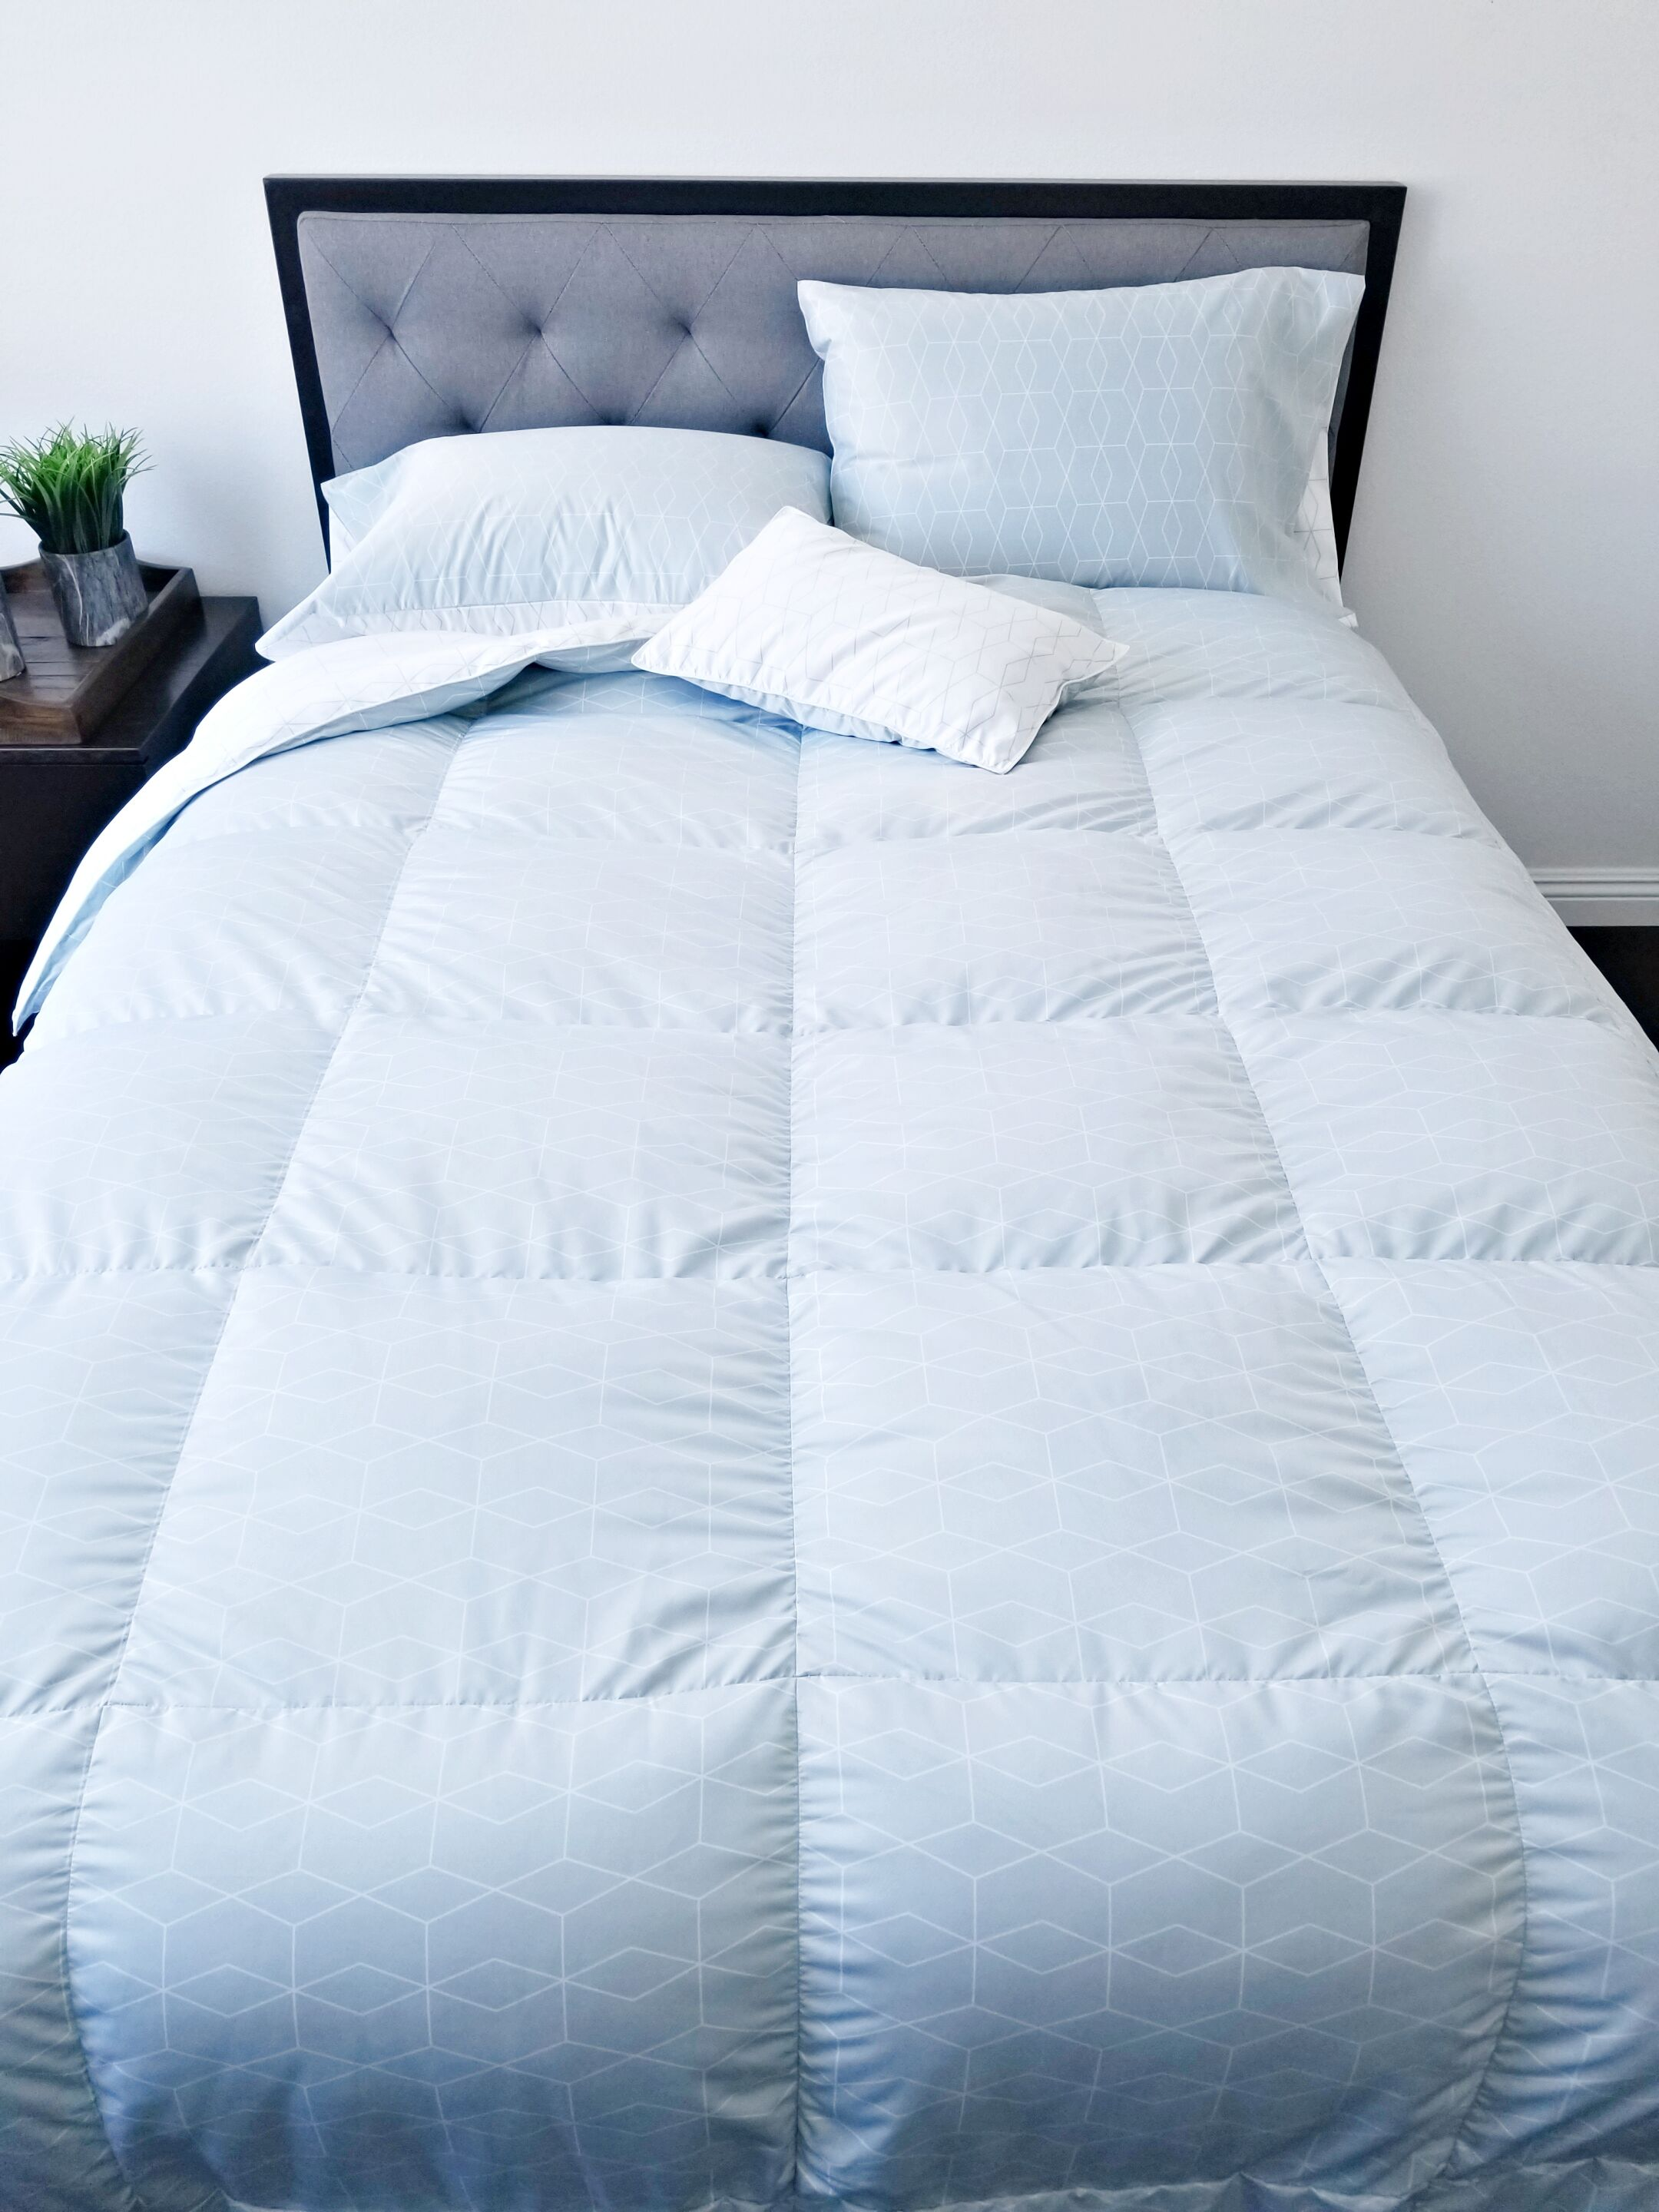 Sewn Down Comforter Size: King/California King, Fill Warmth: Midweight